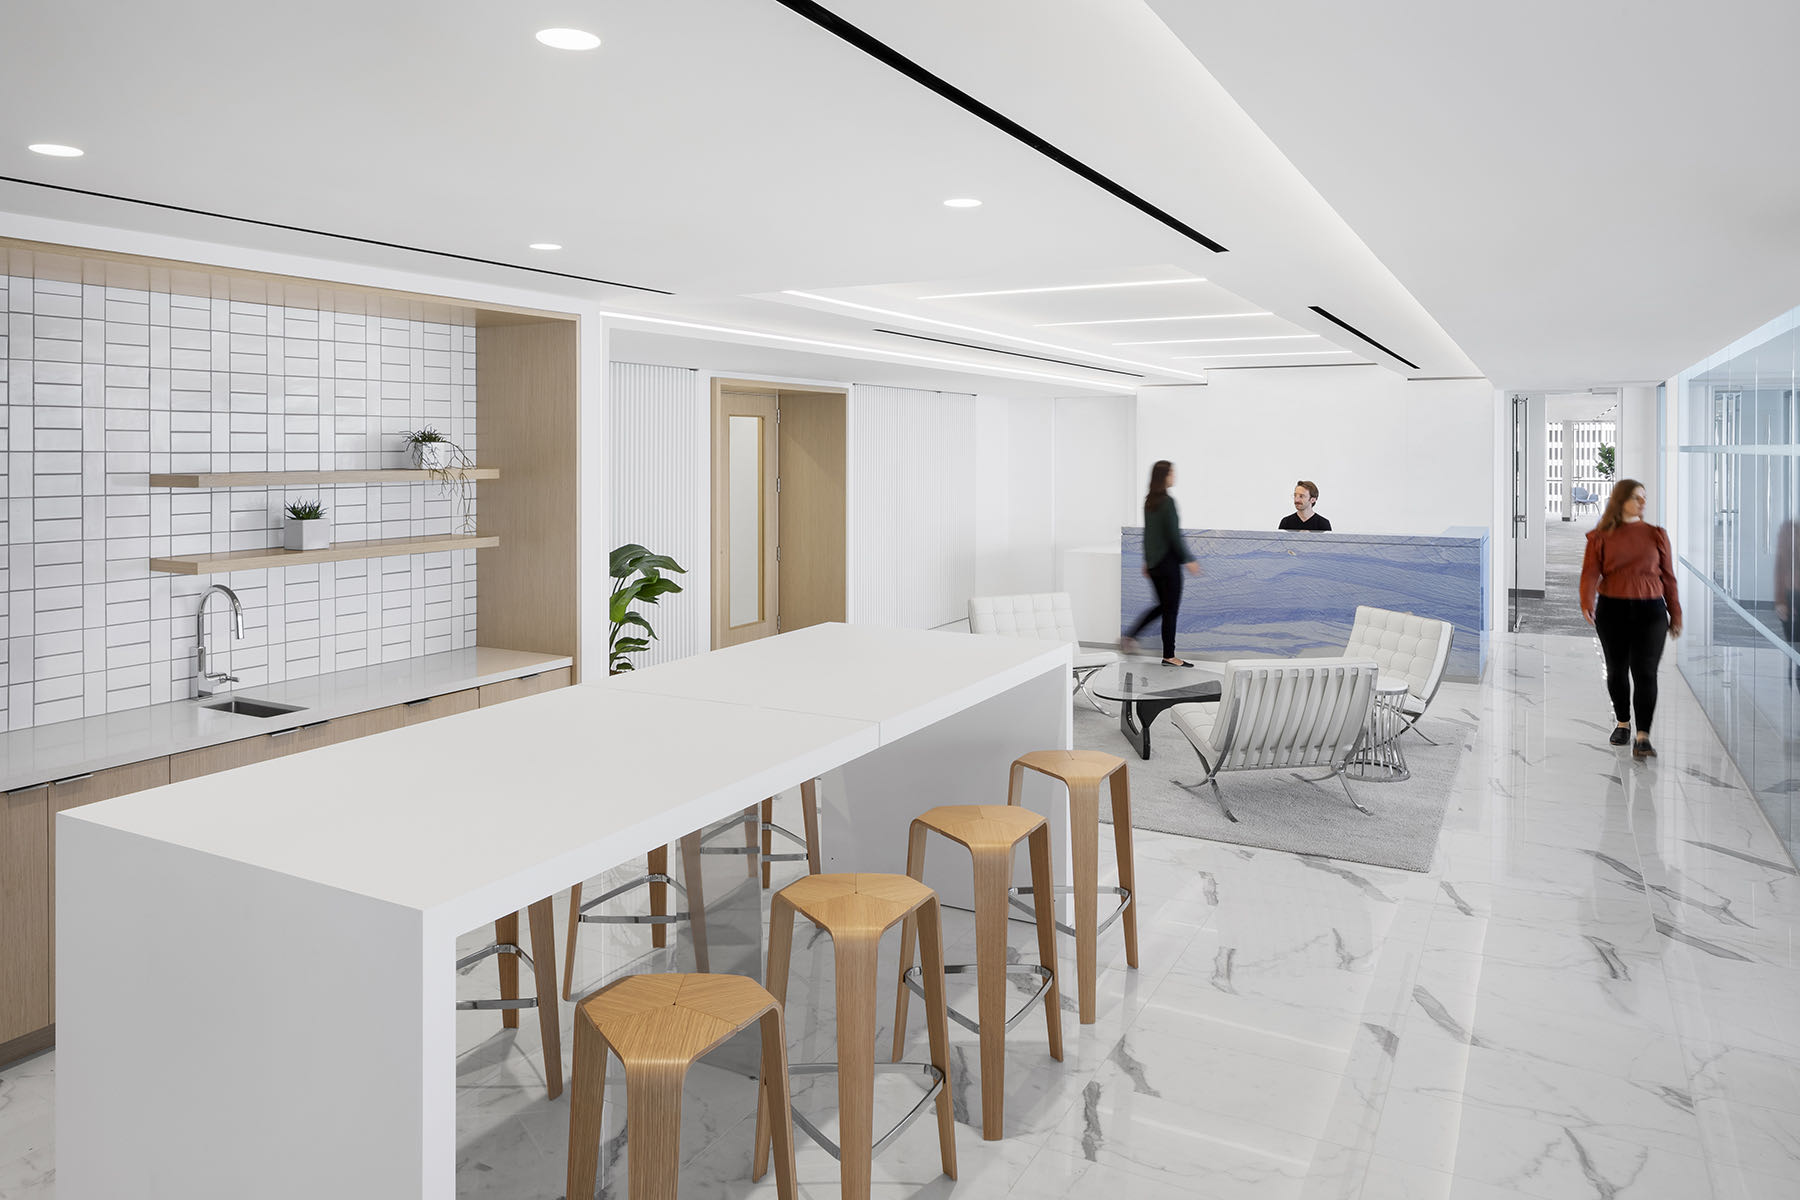 private-financial-services-firm-office-1